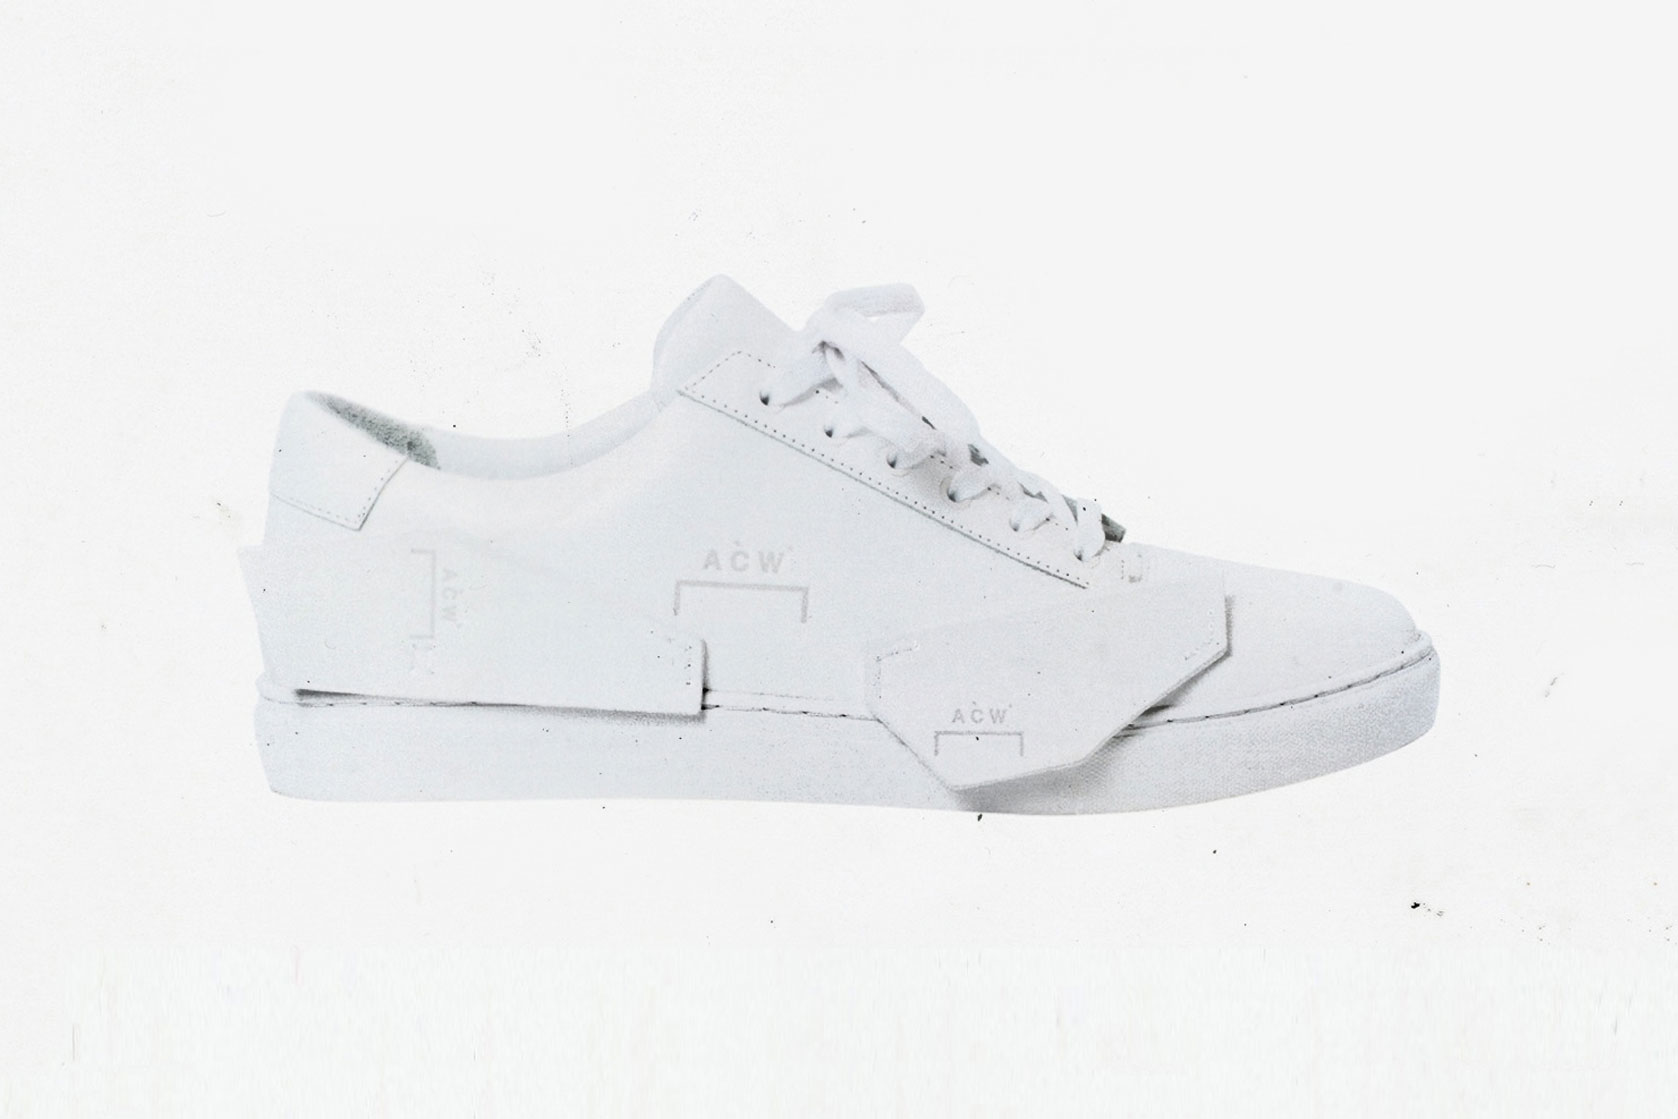 A-COLD-WALL* Shard Low Sneaker shoe footwear Optic White release date announce reveal style independent unique 205 eur 240 usd info drop